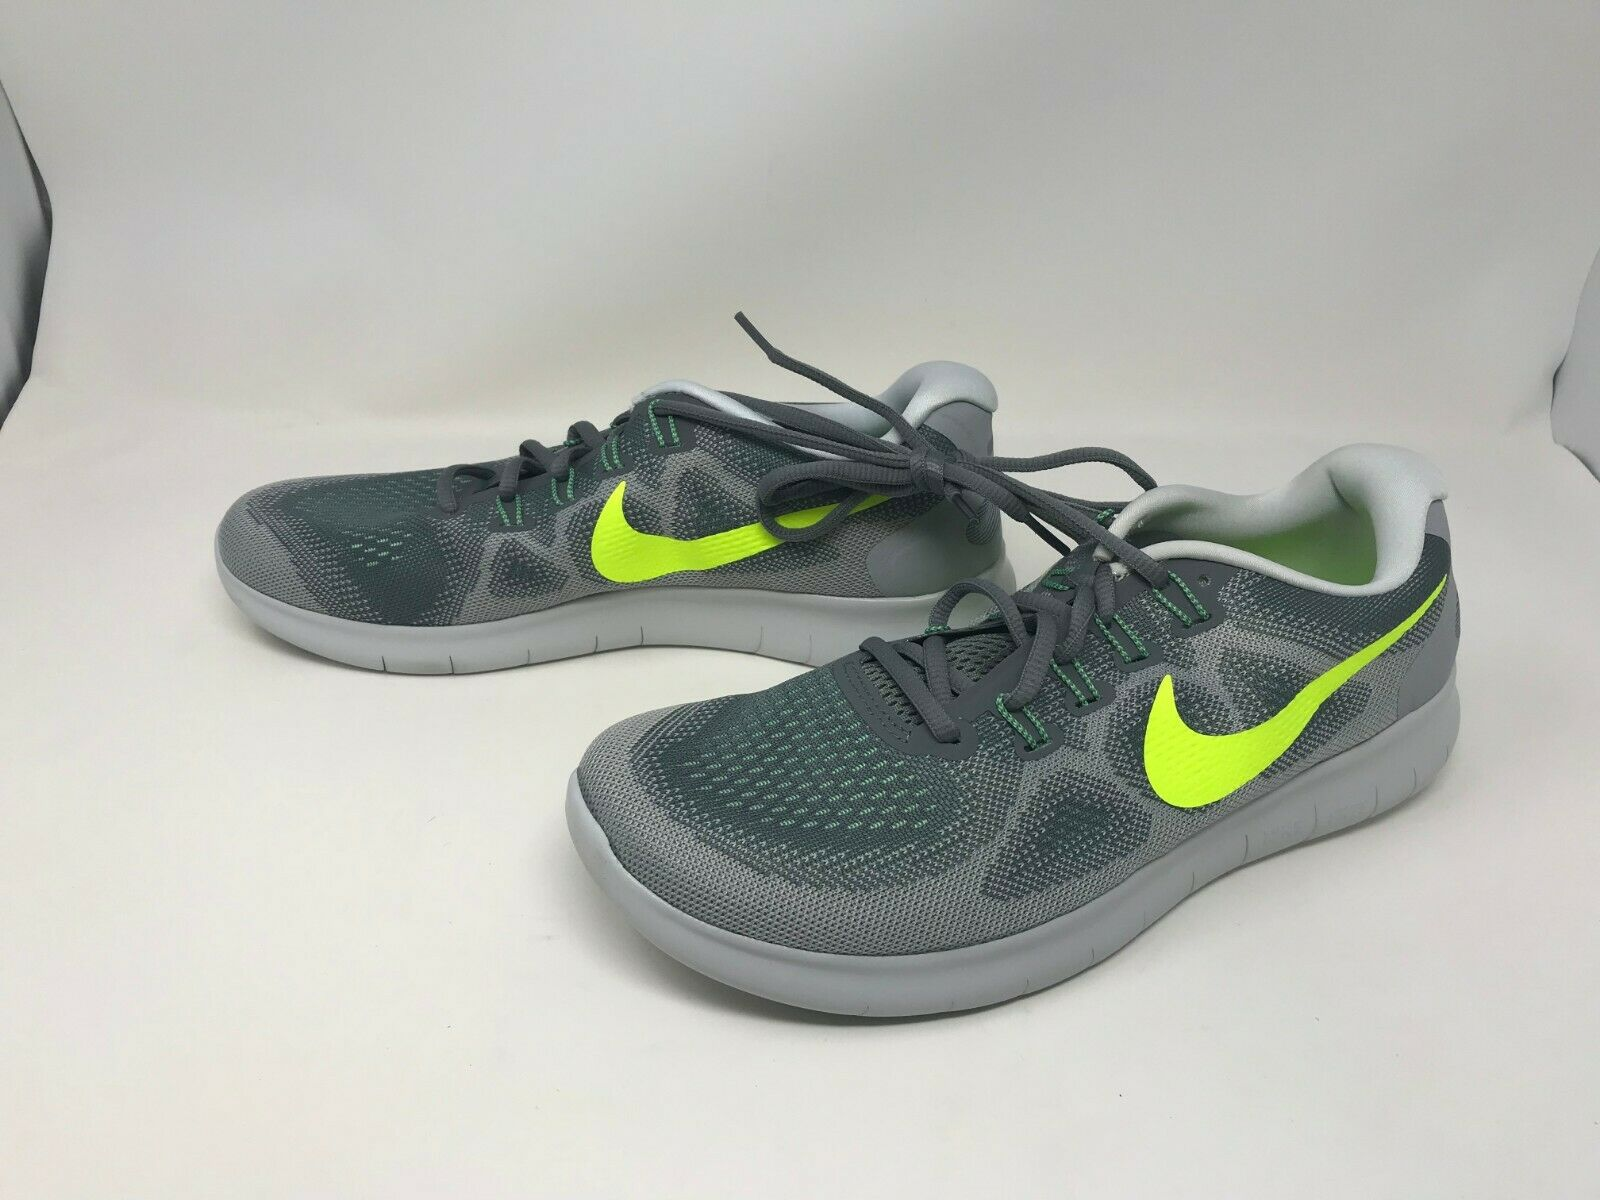 Mens nike (88039-004)  Free RN 2017 Running shoes (23T)